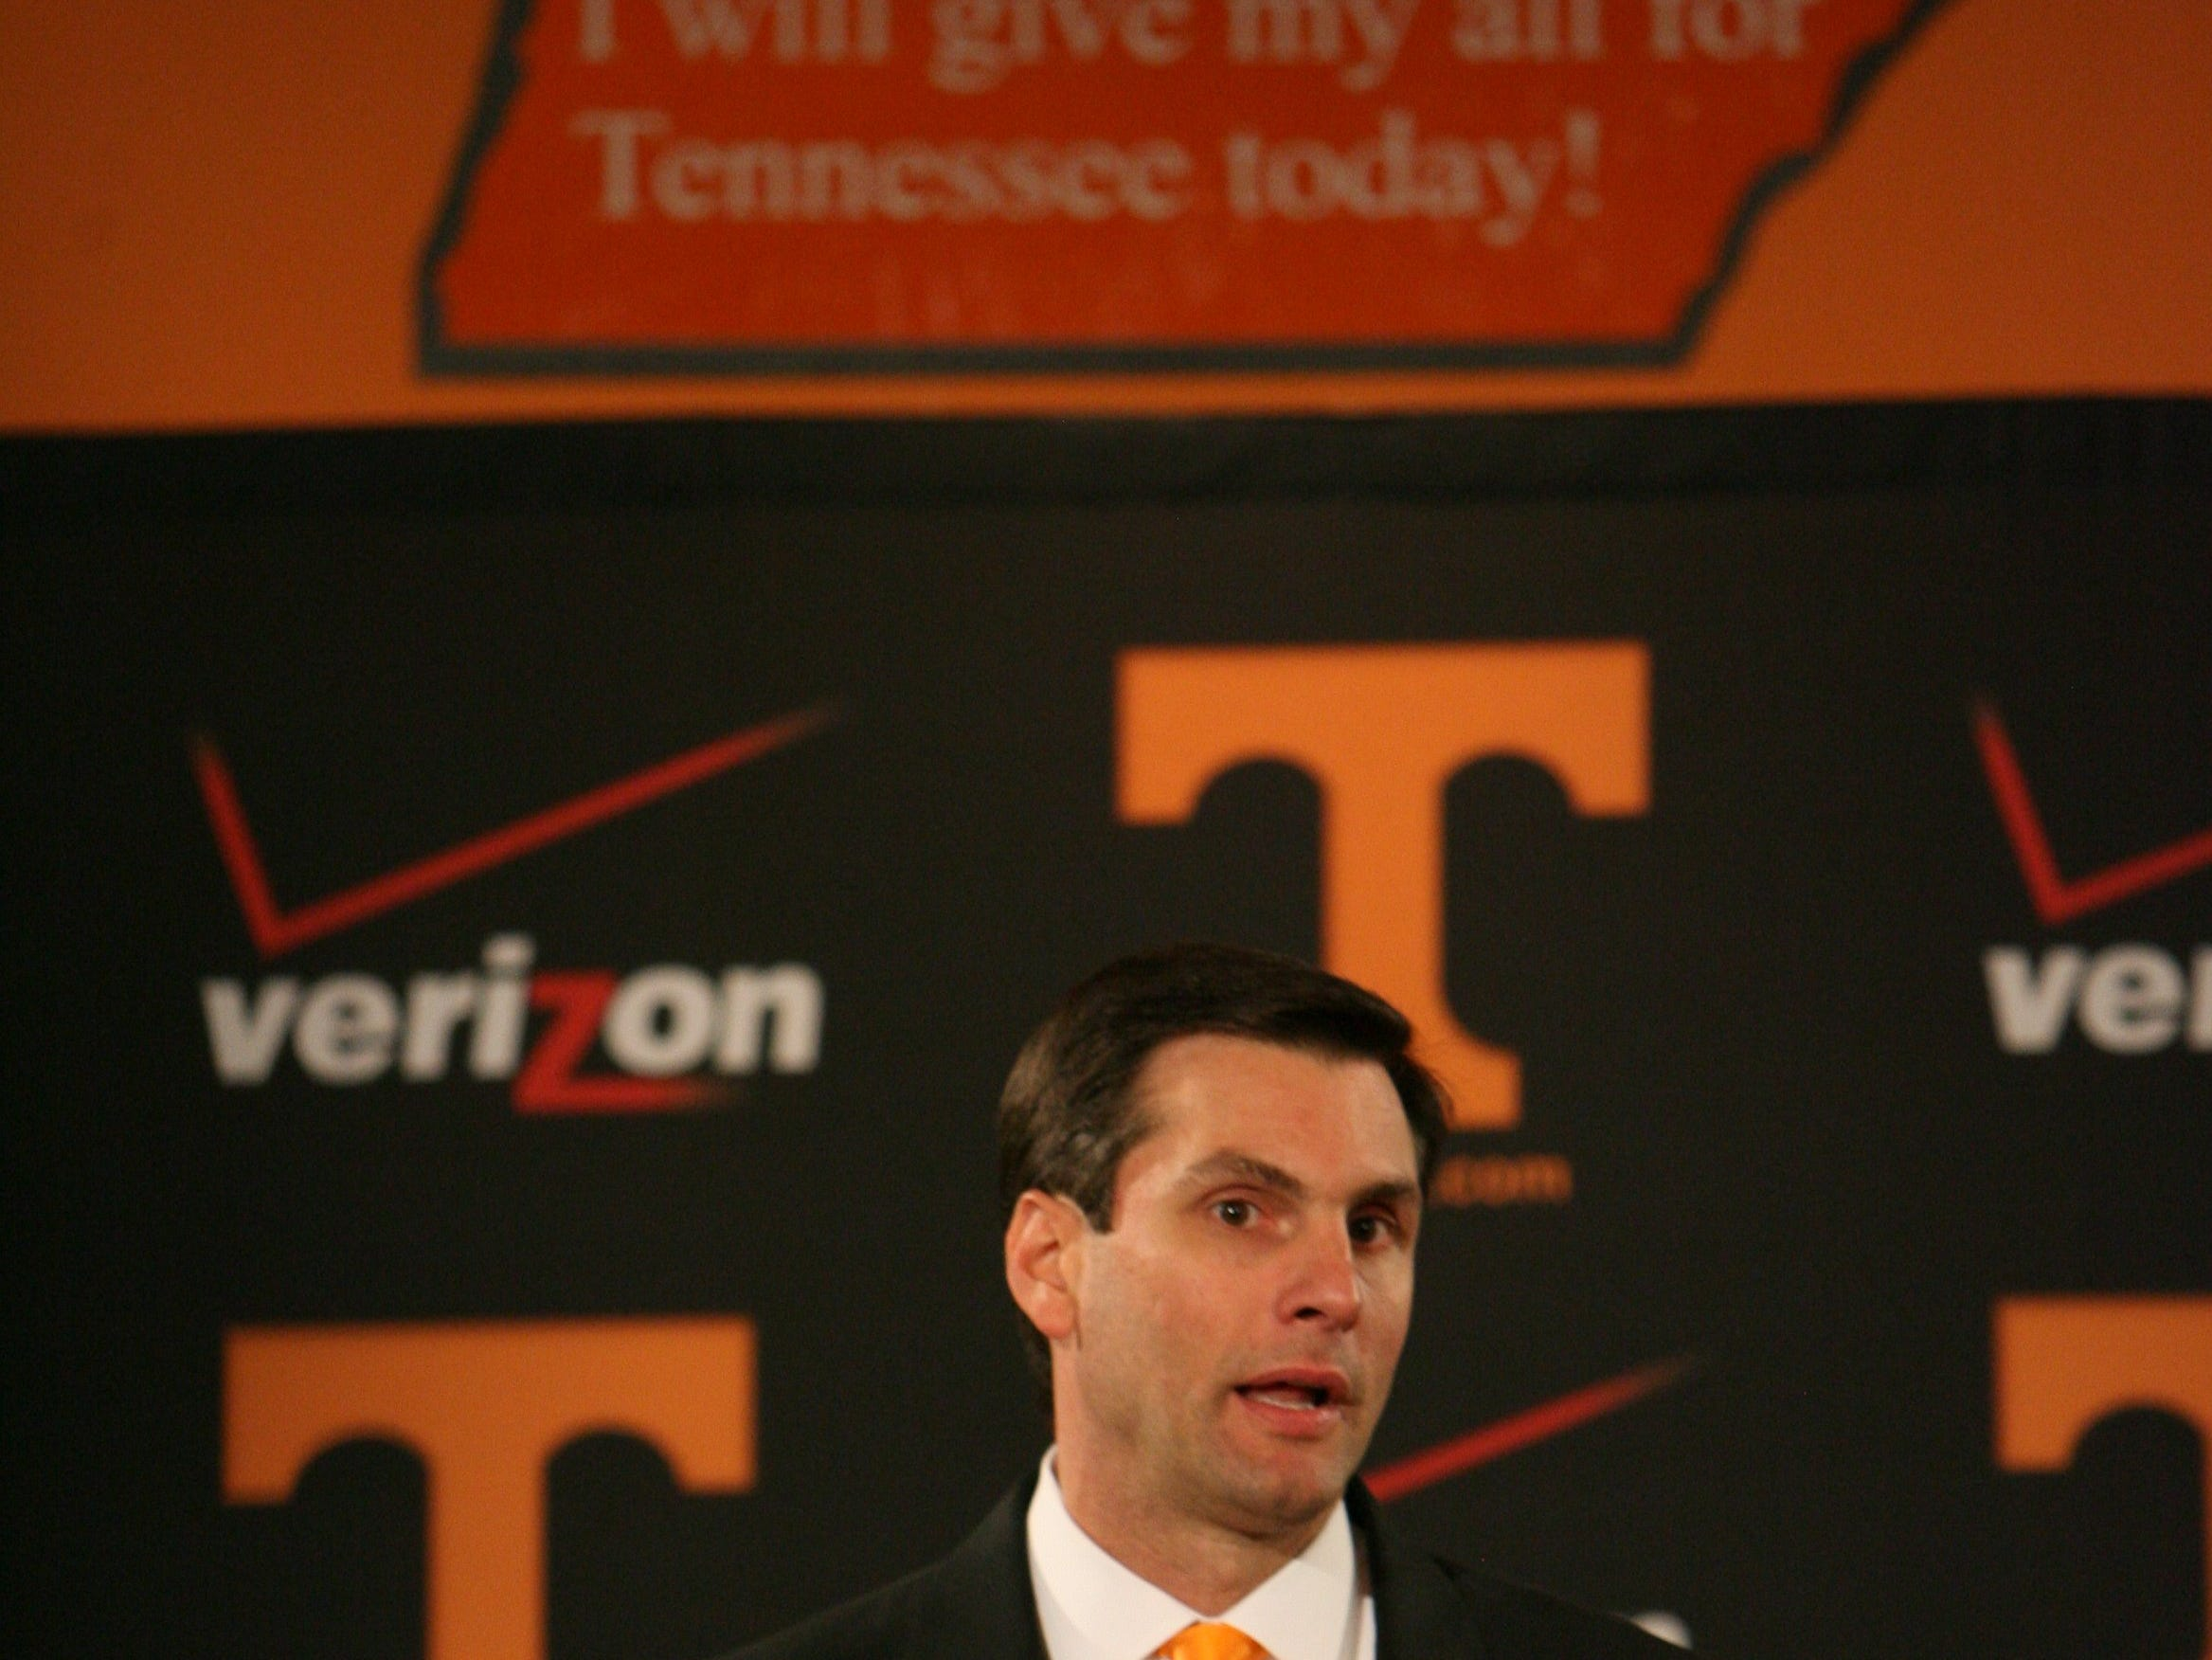 Tennessee head coach Derek Dooley speaks during a press conference in the Peyton Manning Locker Room Complex at Neyland Stadium Friday, Jan. 15, 2010.